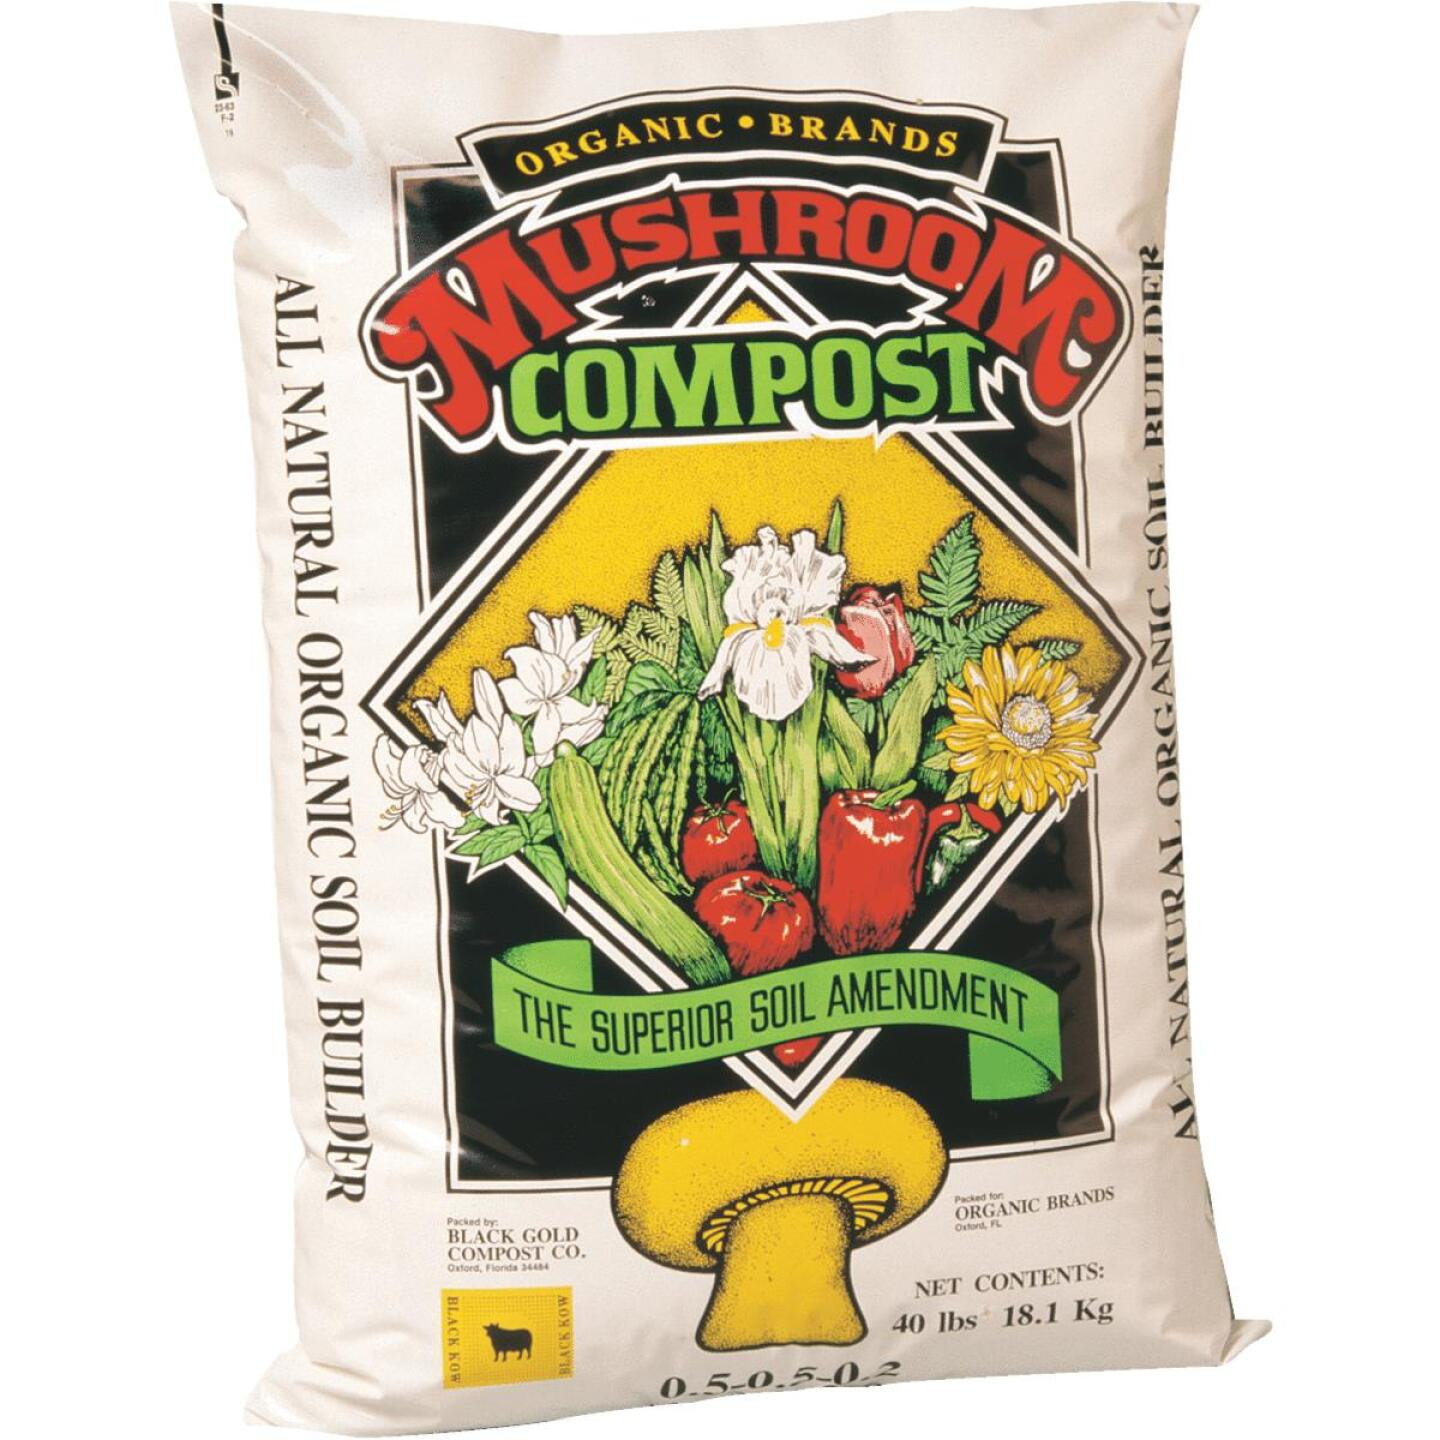 Cowart IncrediSoil 1 Cu. Ft. 46 Lb. All Natural Mushroom Compost Image 1